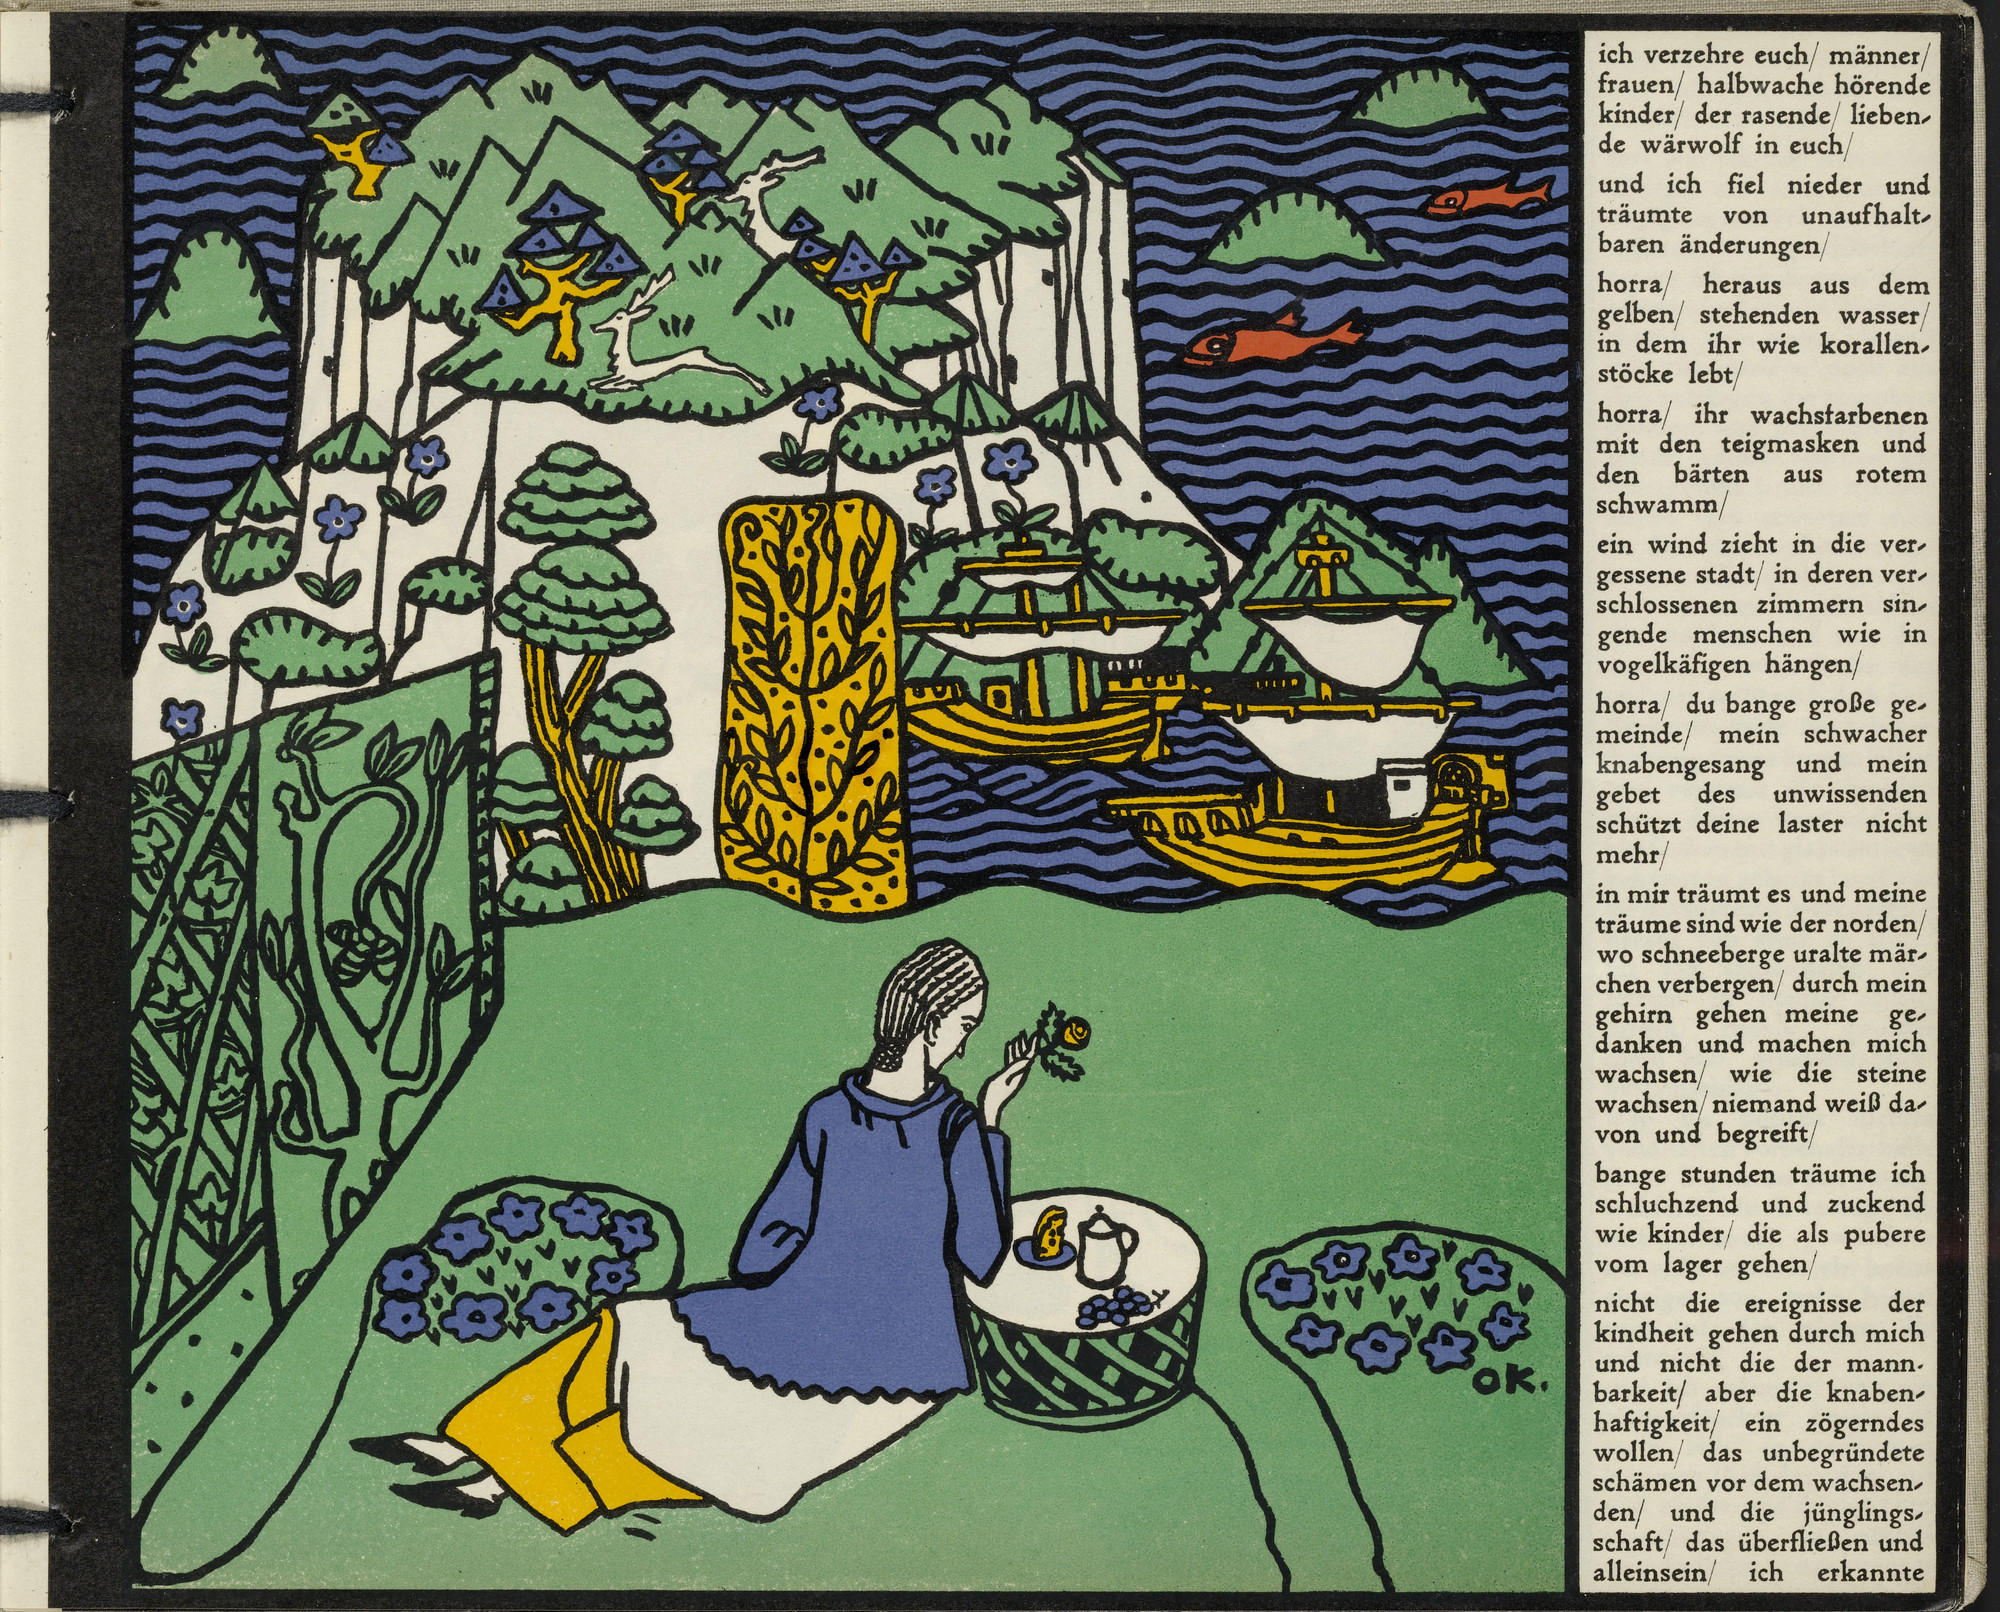 Oskar Kokoschka. The Distant Island (Die ferne Insel) _ (in-text plate, folio 6) from _Die träumenden Knaben (The Dreaming Boys). 1917 (executed 1907-08)